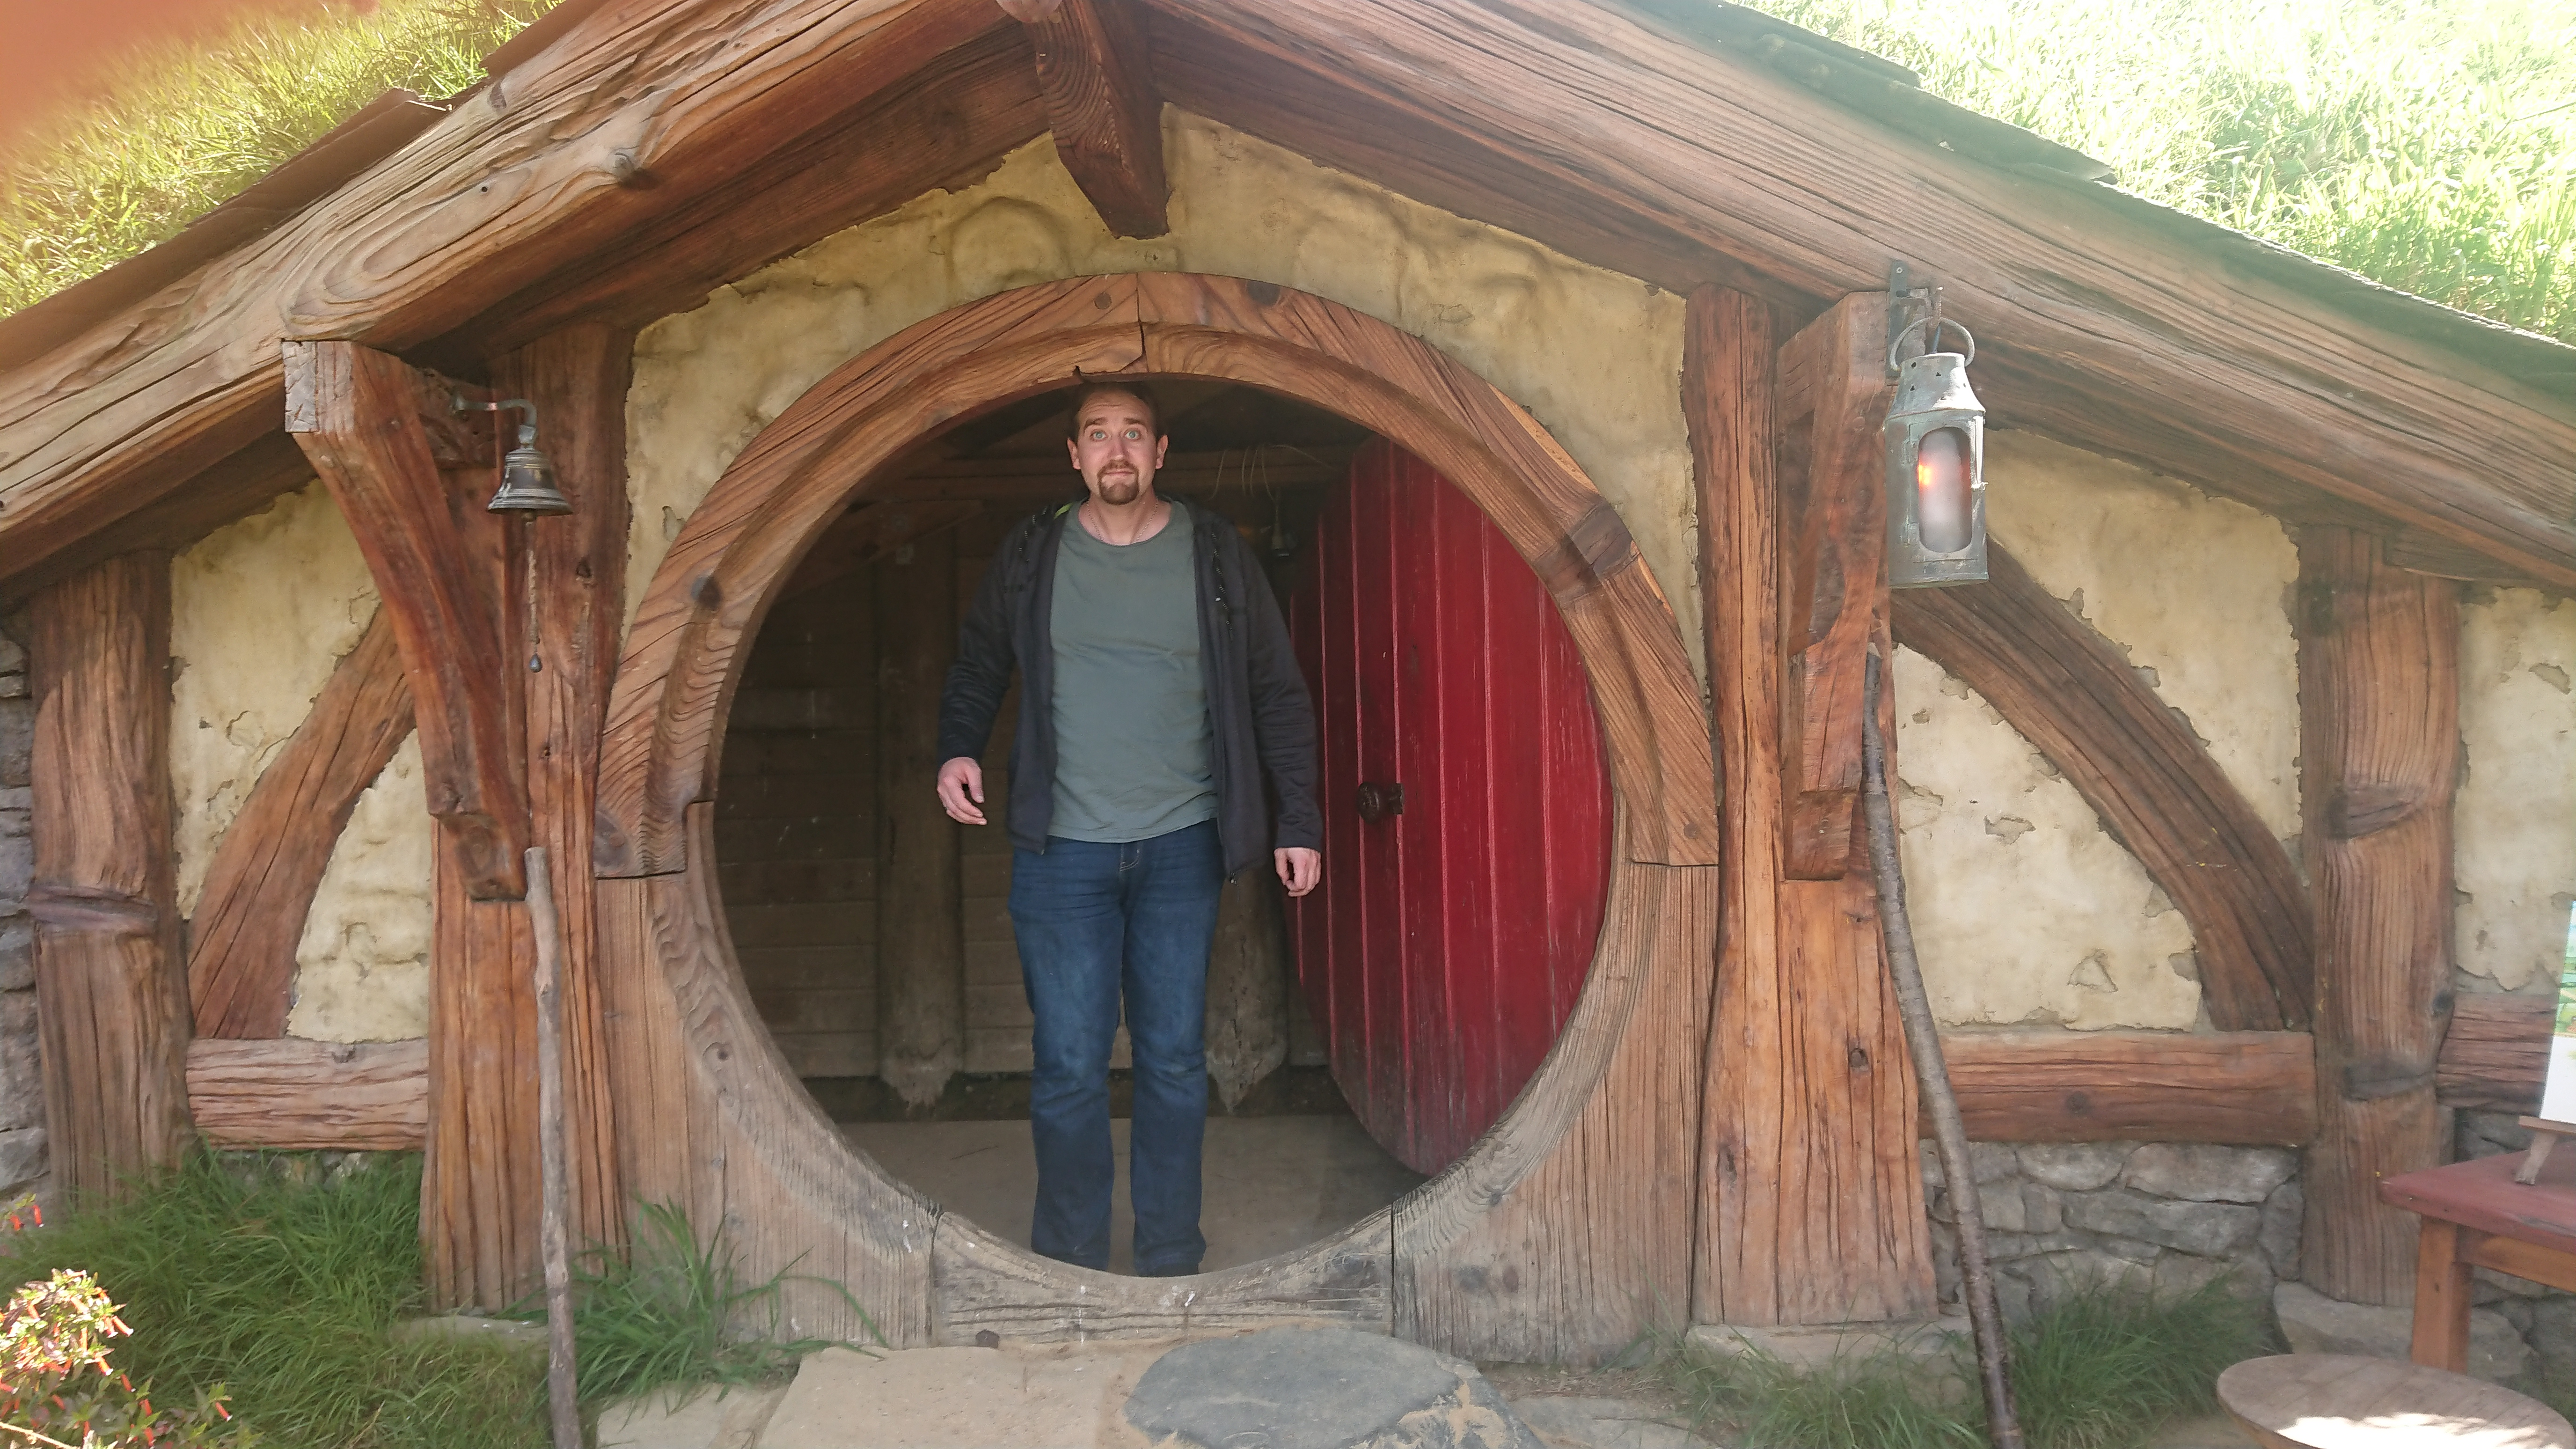 A Hobbit hole that I can (almost) fit in!